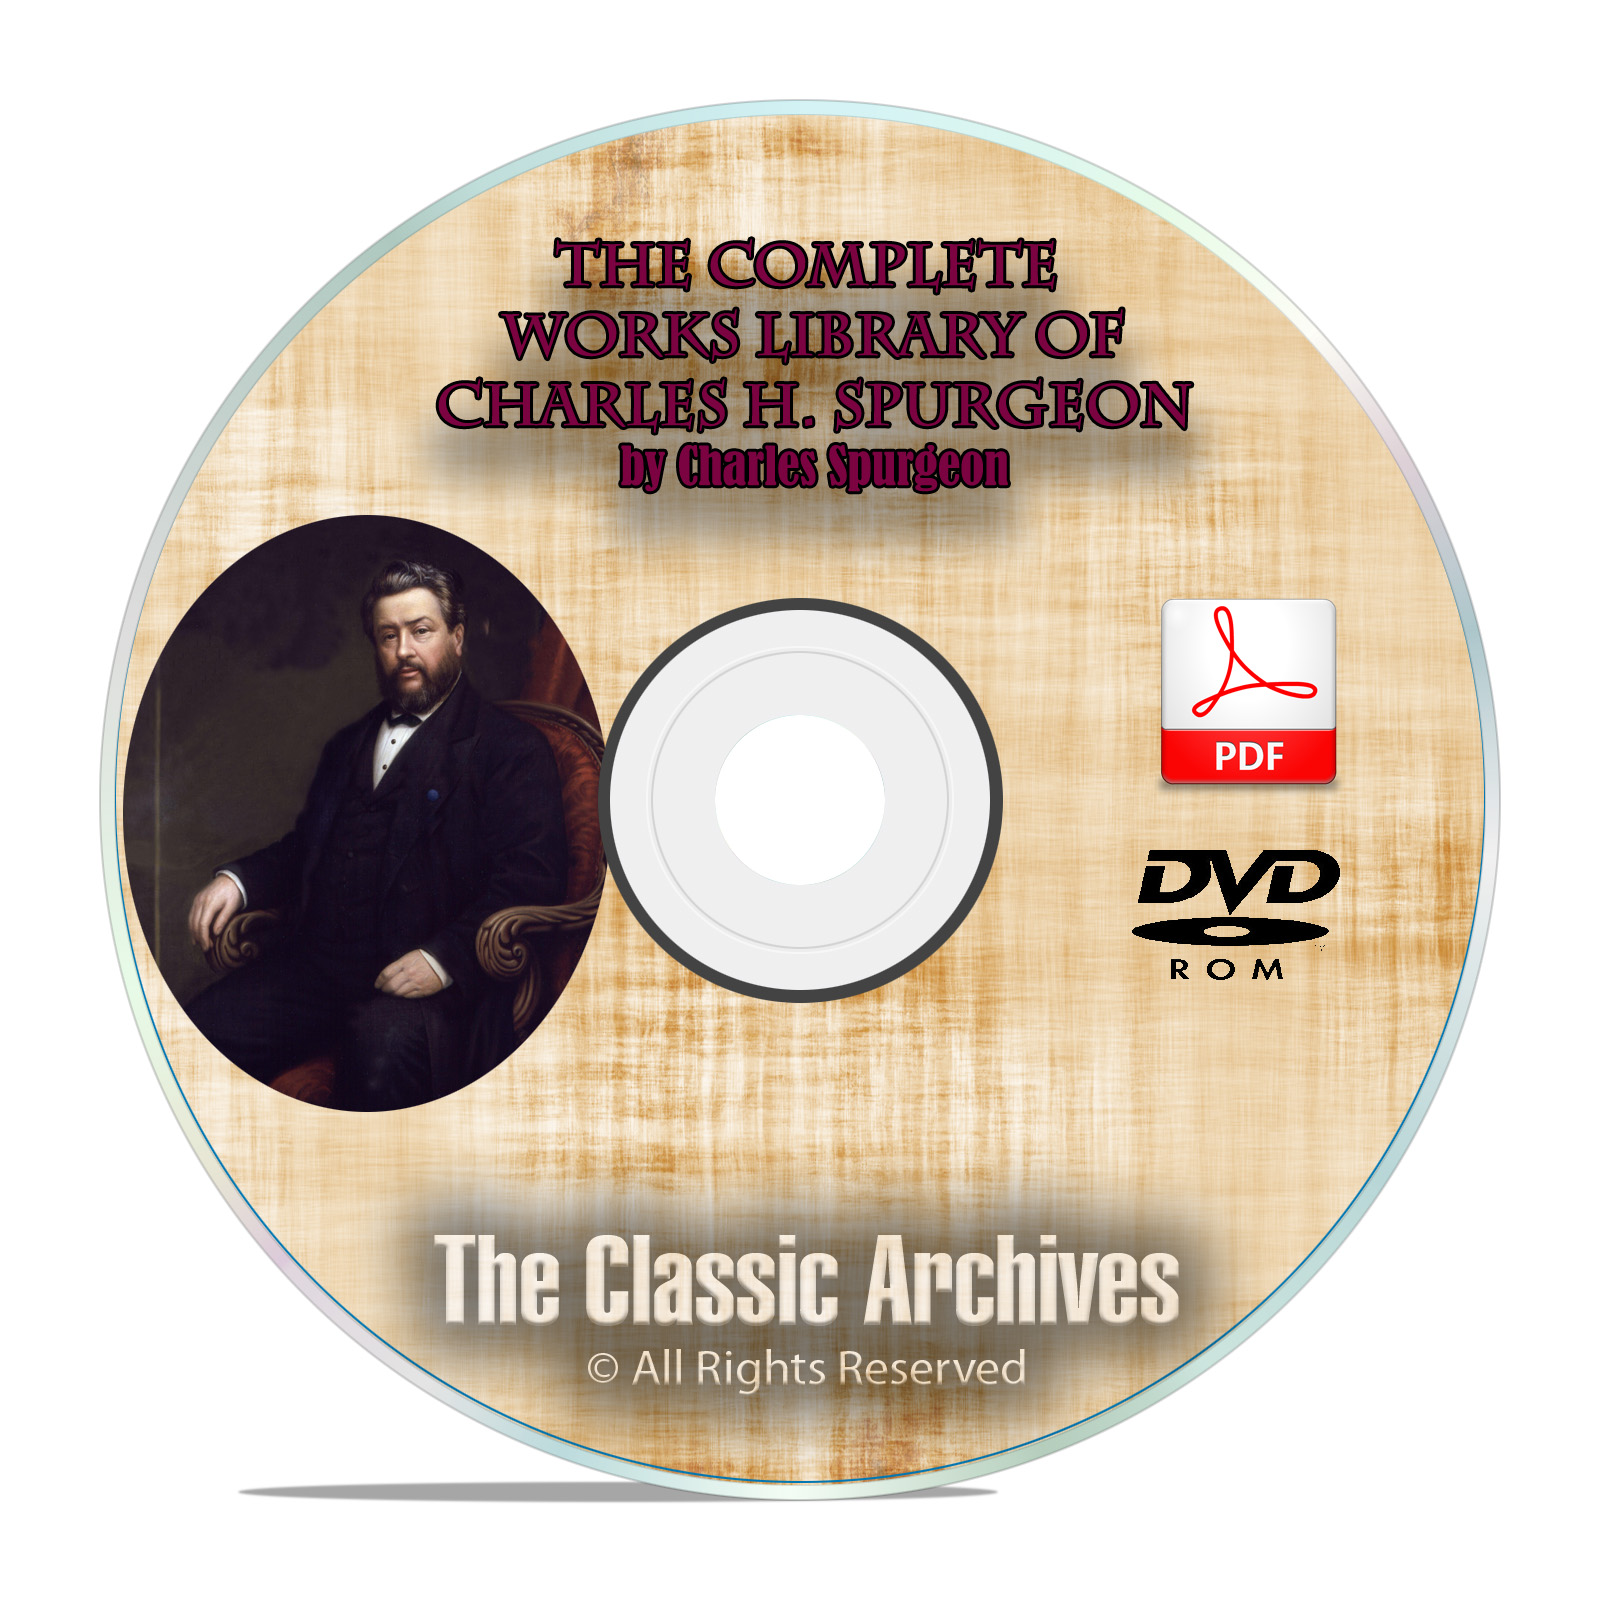 CH Spurgeon 3500 Bible Sermons Complete Works Christian Bible Study DVD-ROM